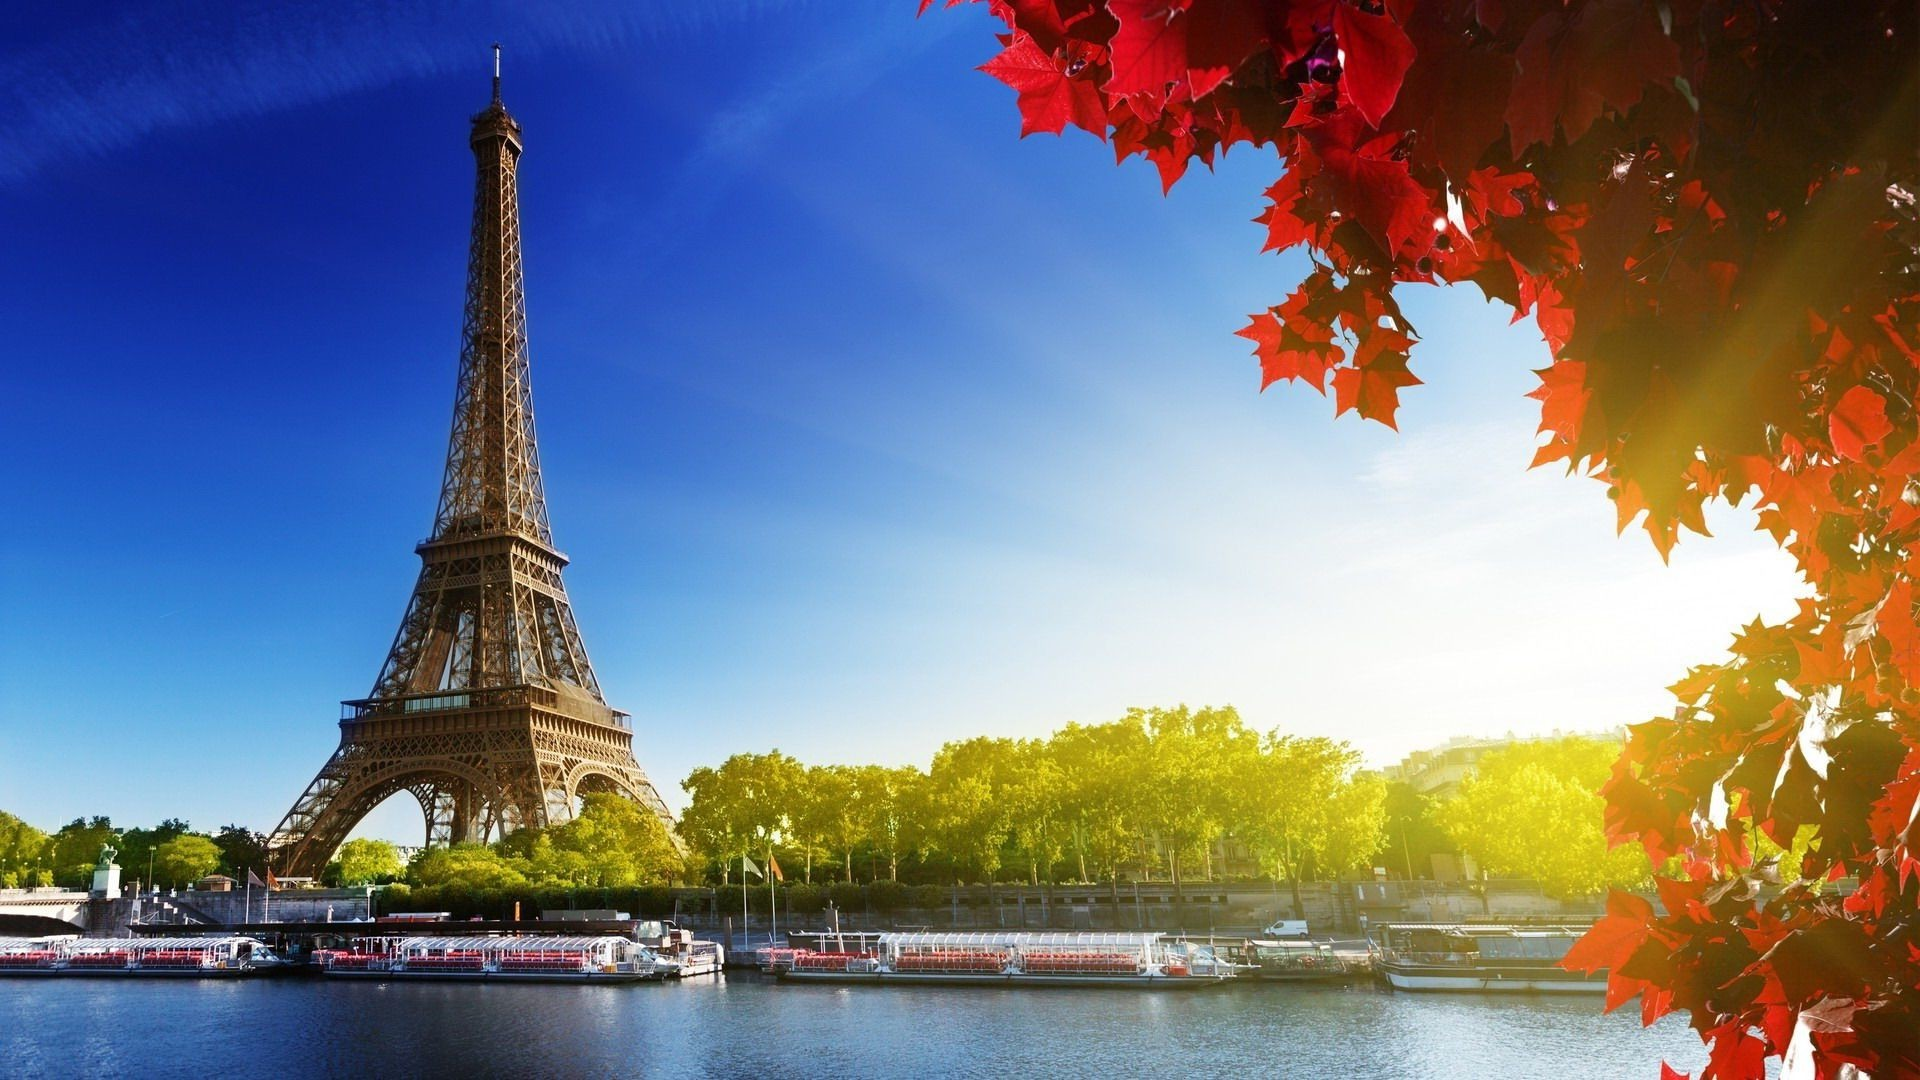 Res: 1920x1080, 30+ Best HD France Wallpapers feelgrPH - HD Wallpapers